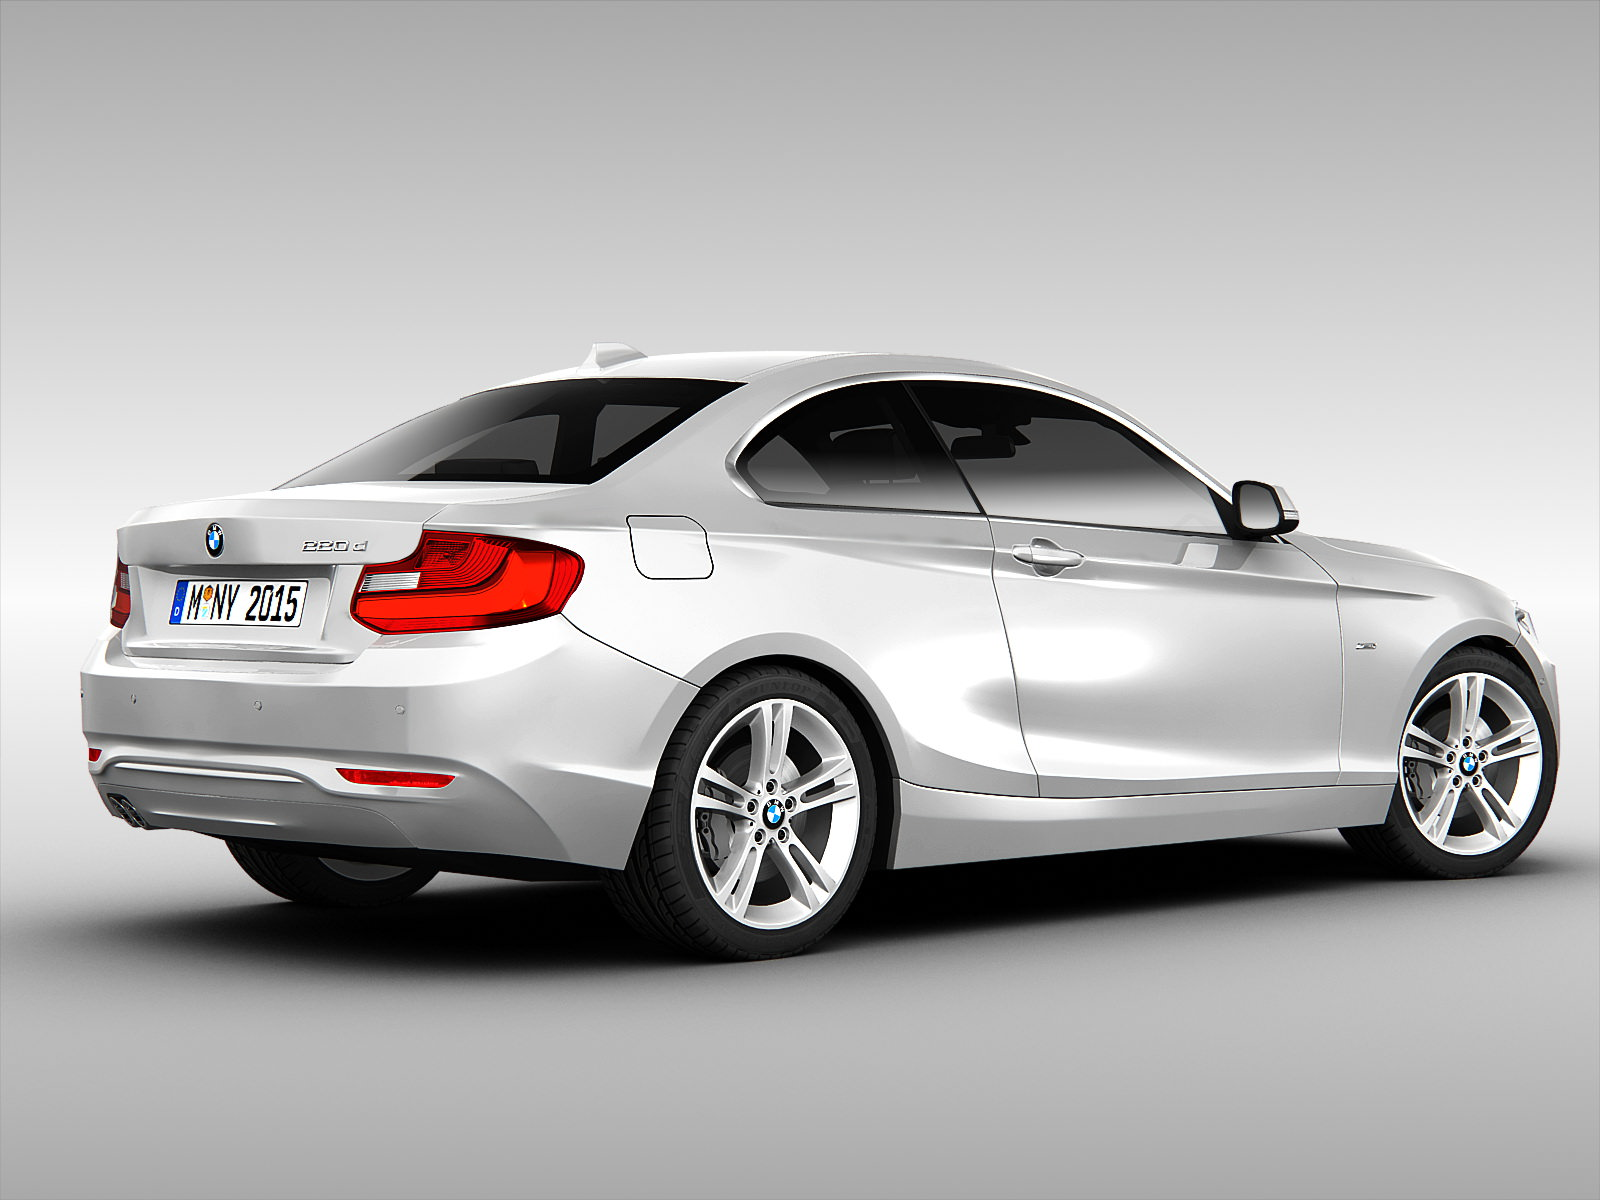 Bmw 2015 Models 12 Car Desktop Background